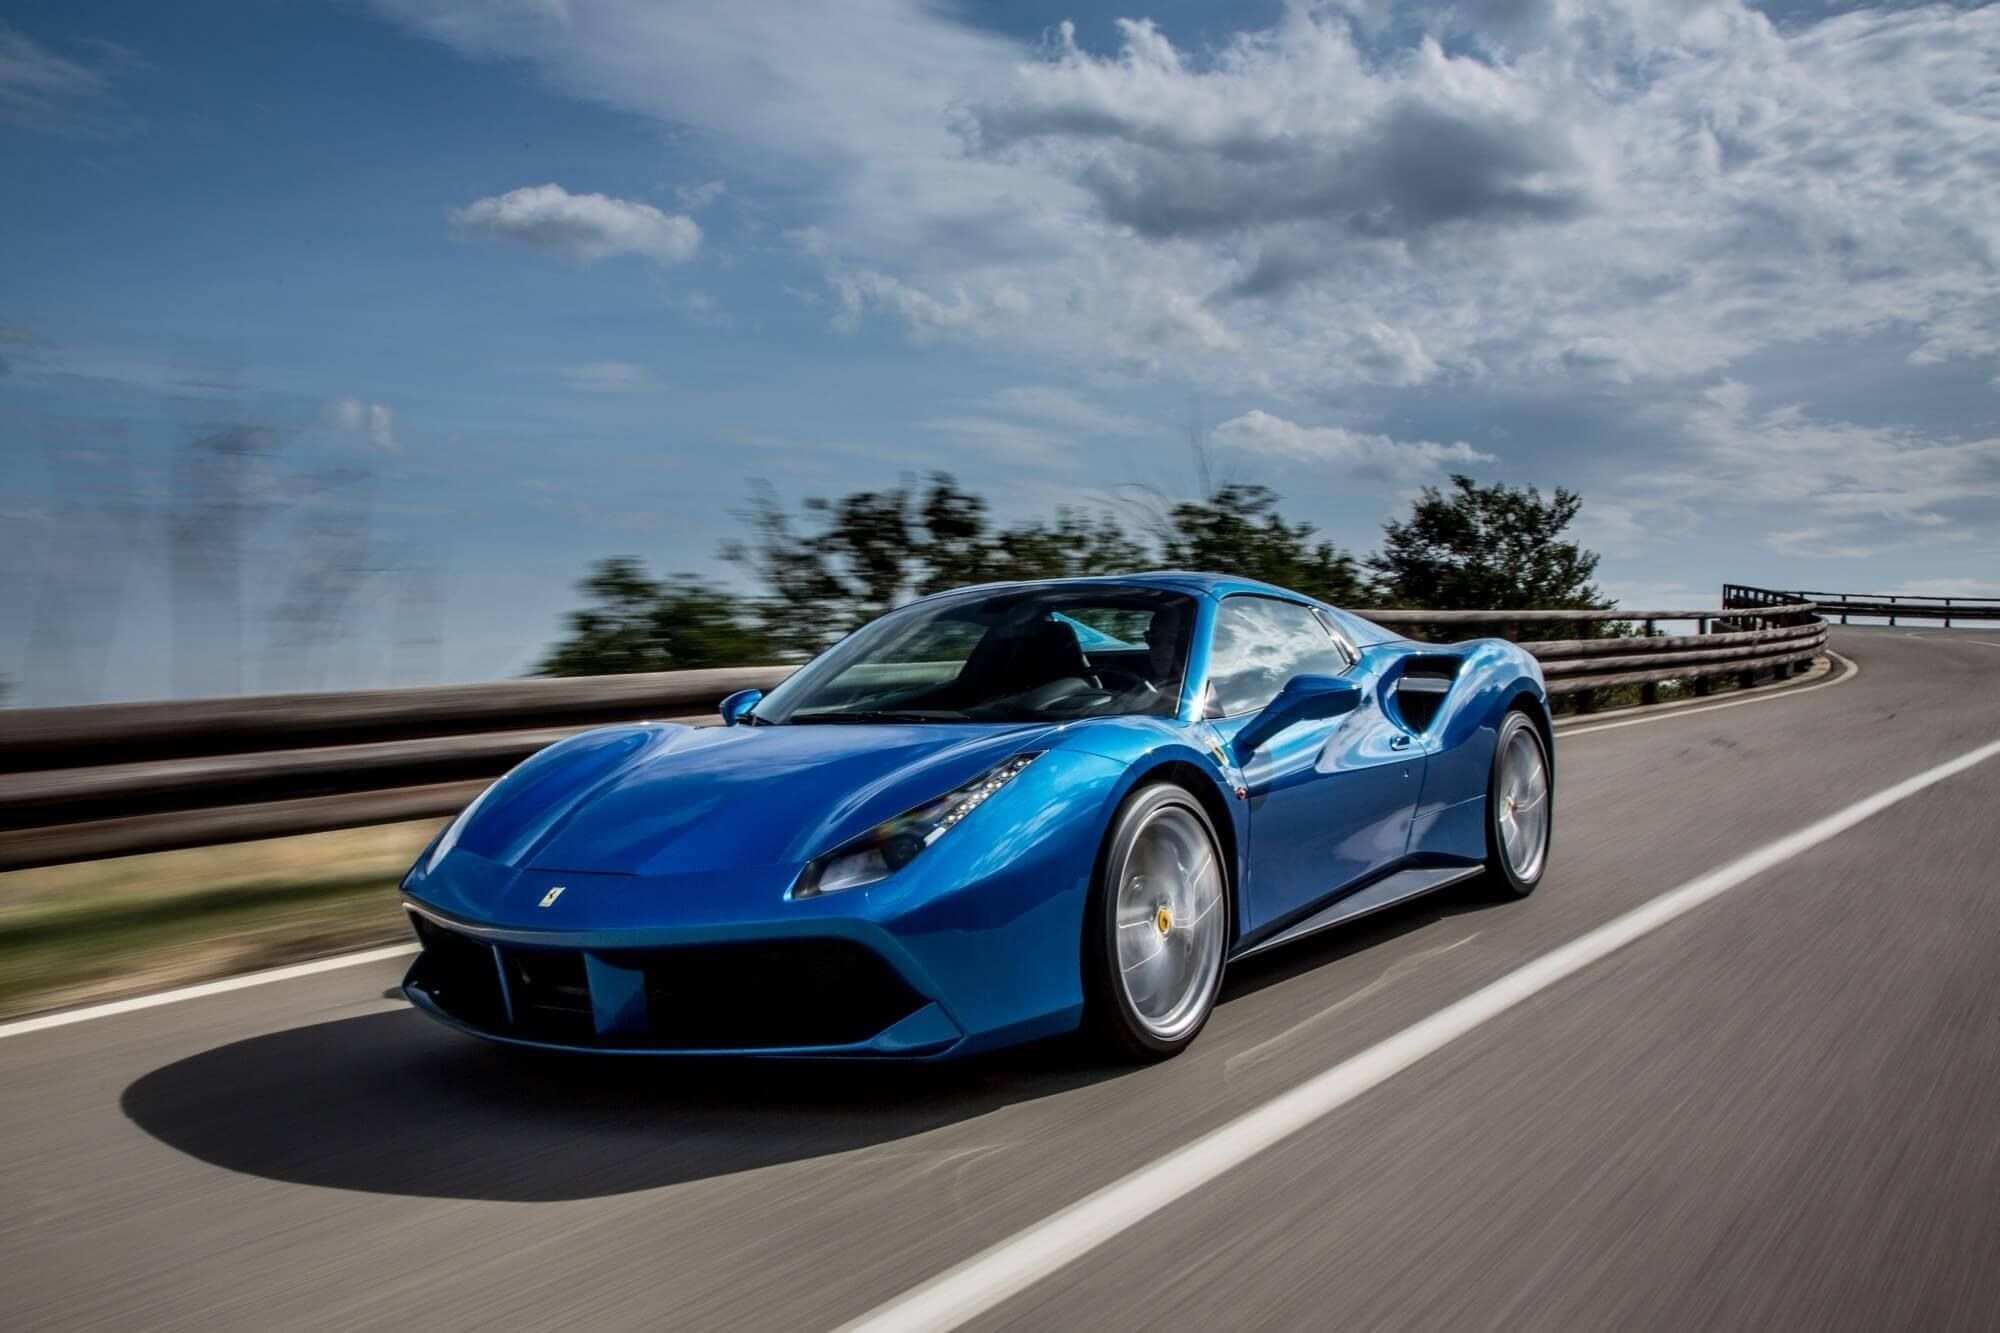 67 A 2019 Ferrari 458 Spider Exterior And Interior